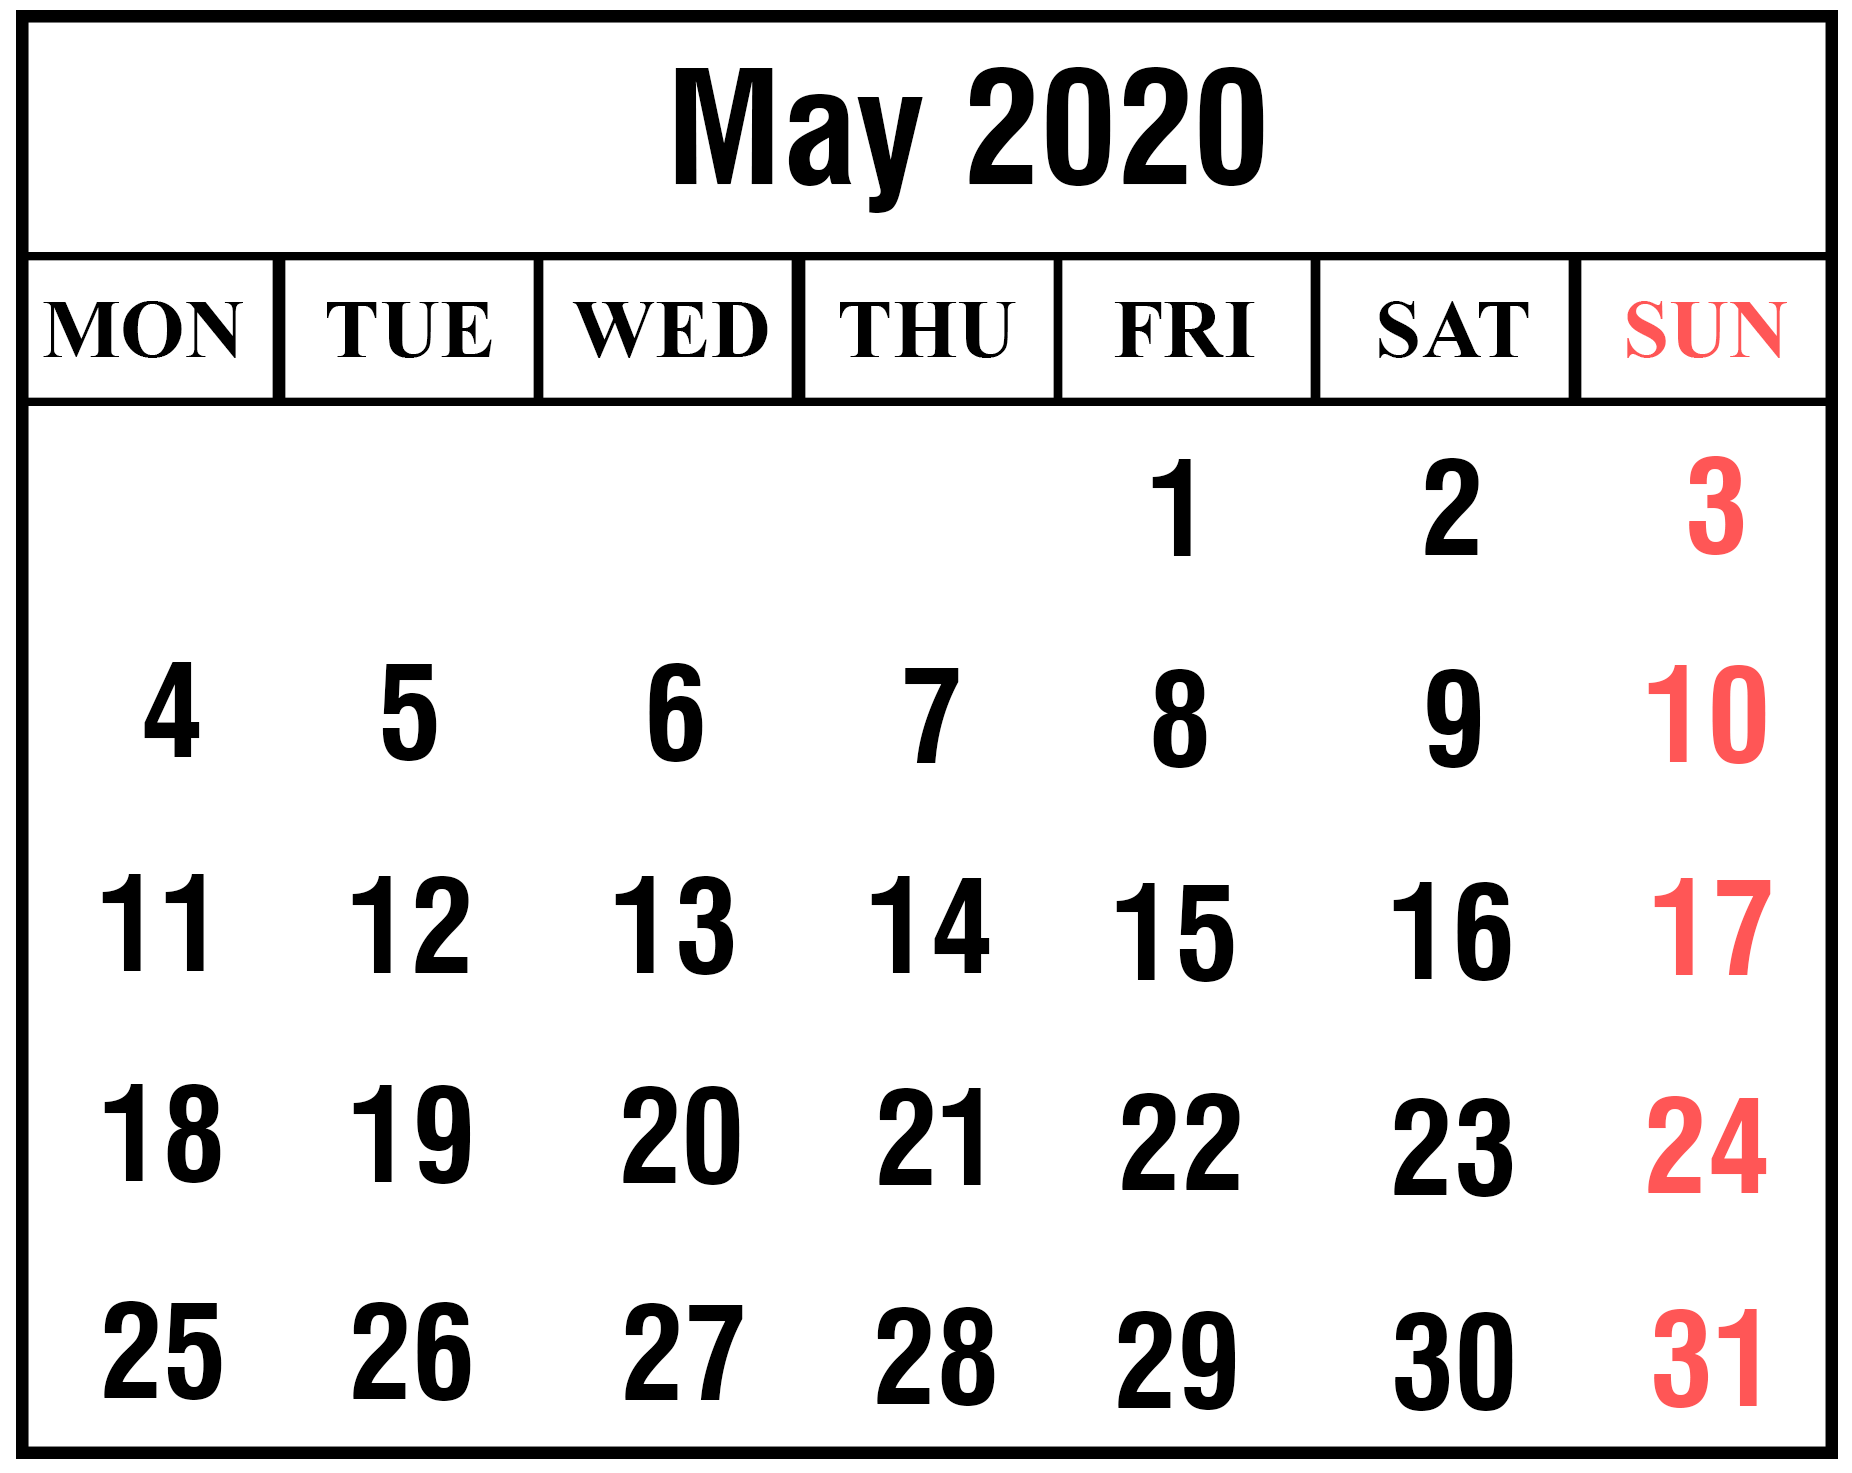 May 2020 Calendar with Holidays India